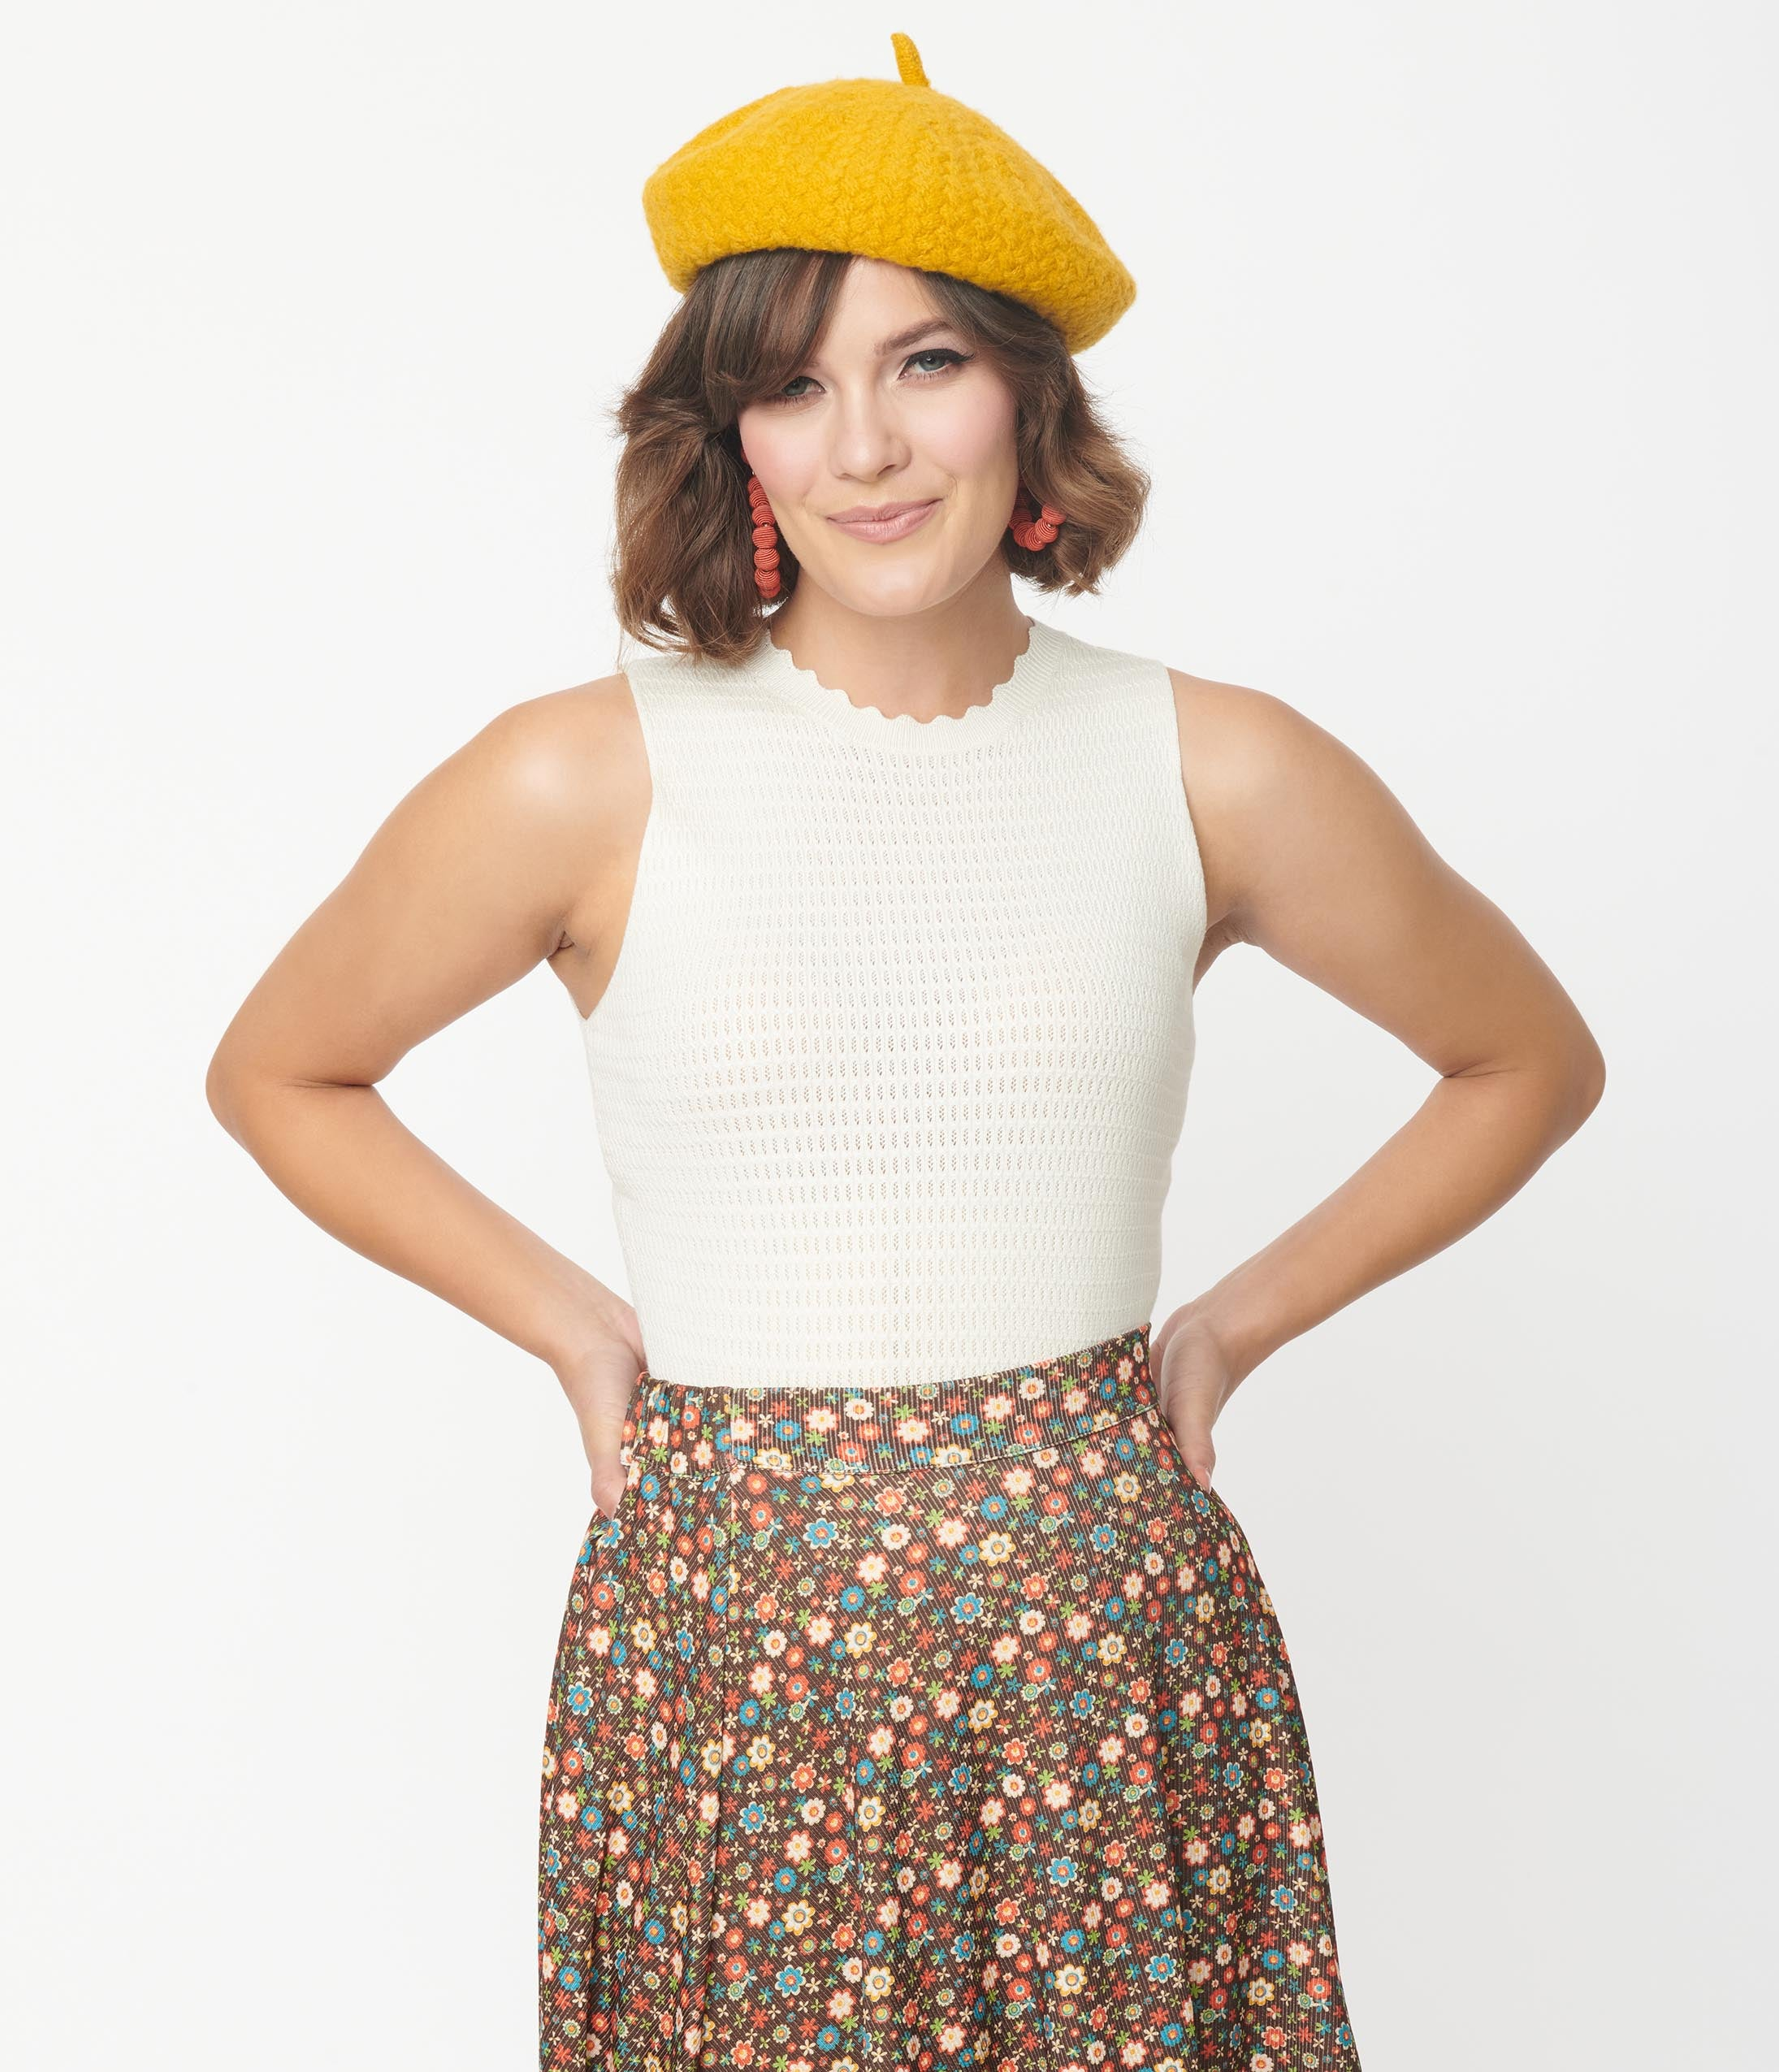 1960s Style Clothing & 60s Fashion Ivory Crochet Bailey Sleeveless Knit Top $39.00 AT vintagedancer.com